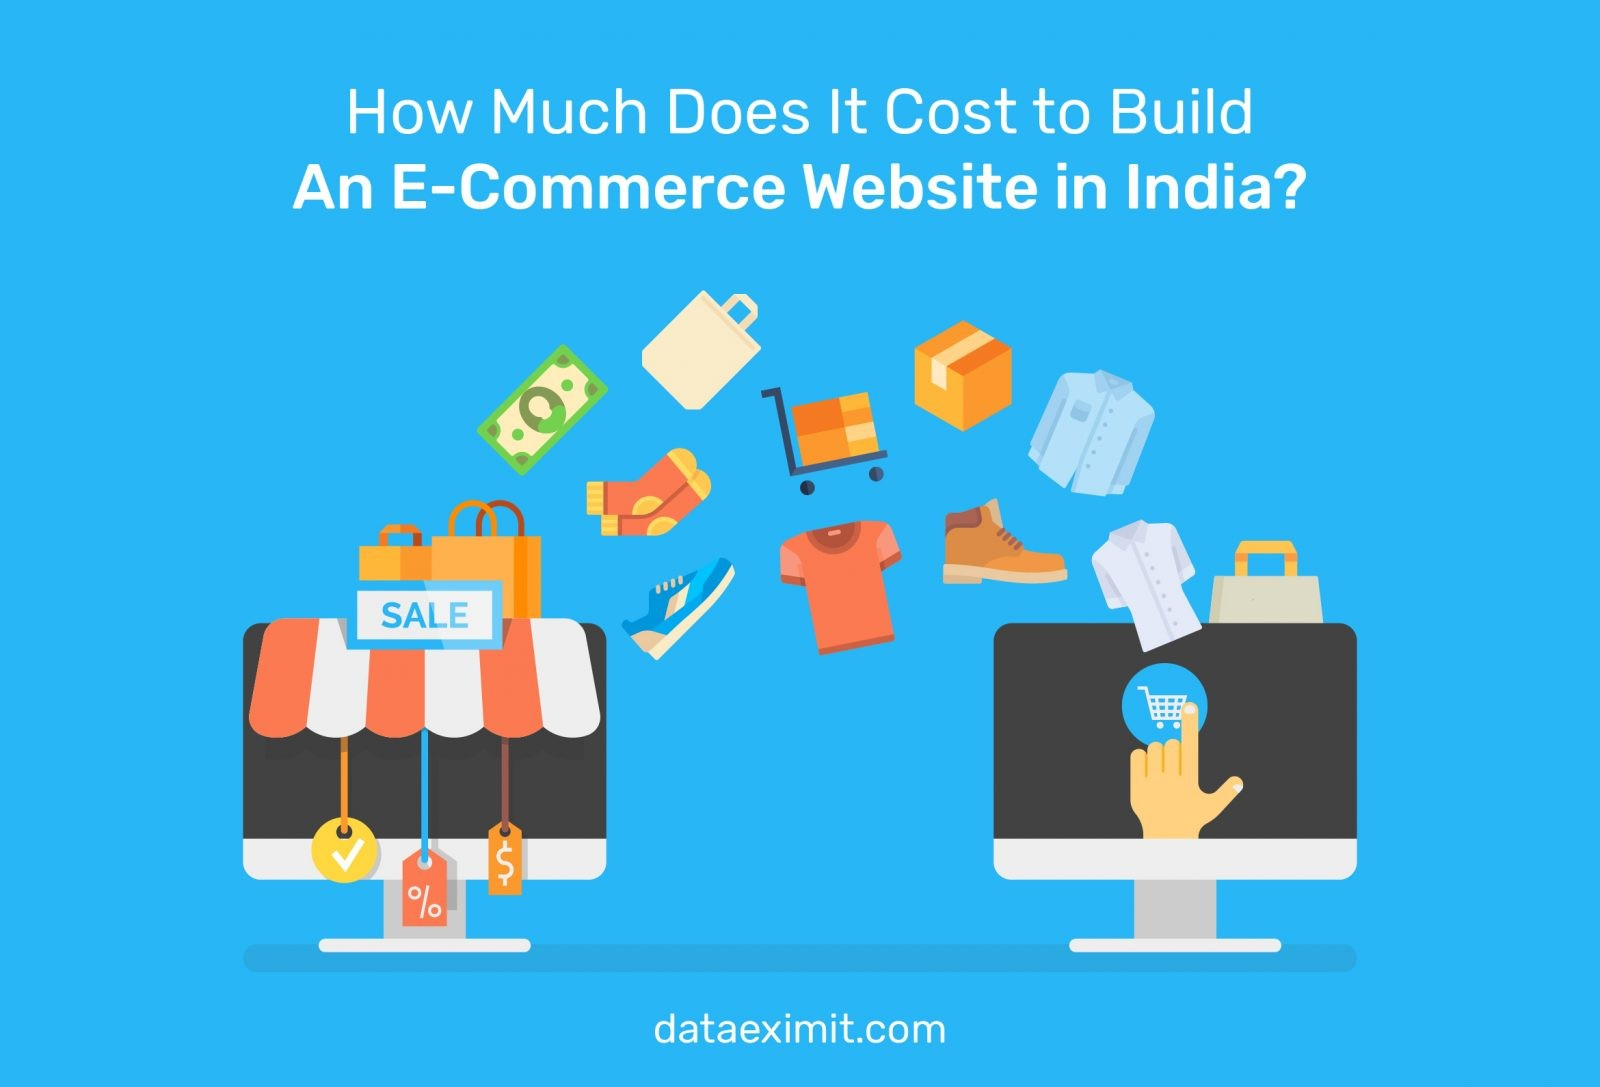 How Much Does It Cost to Build An E-Commerce Website in India